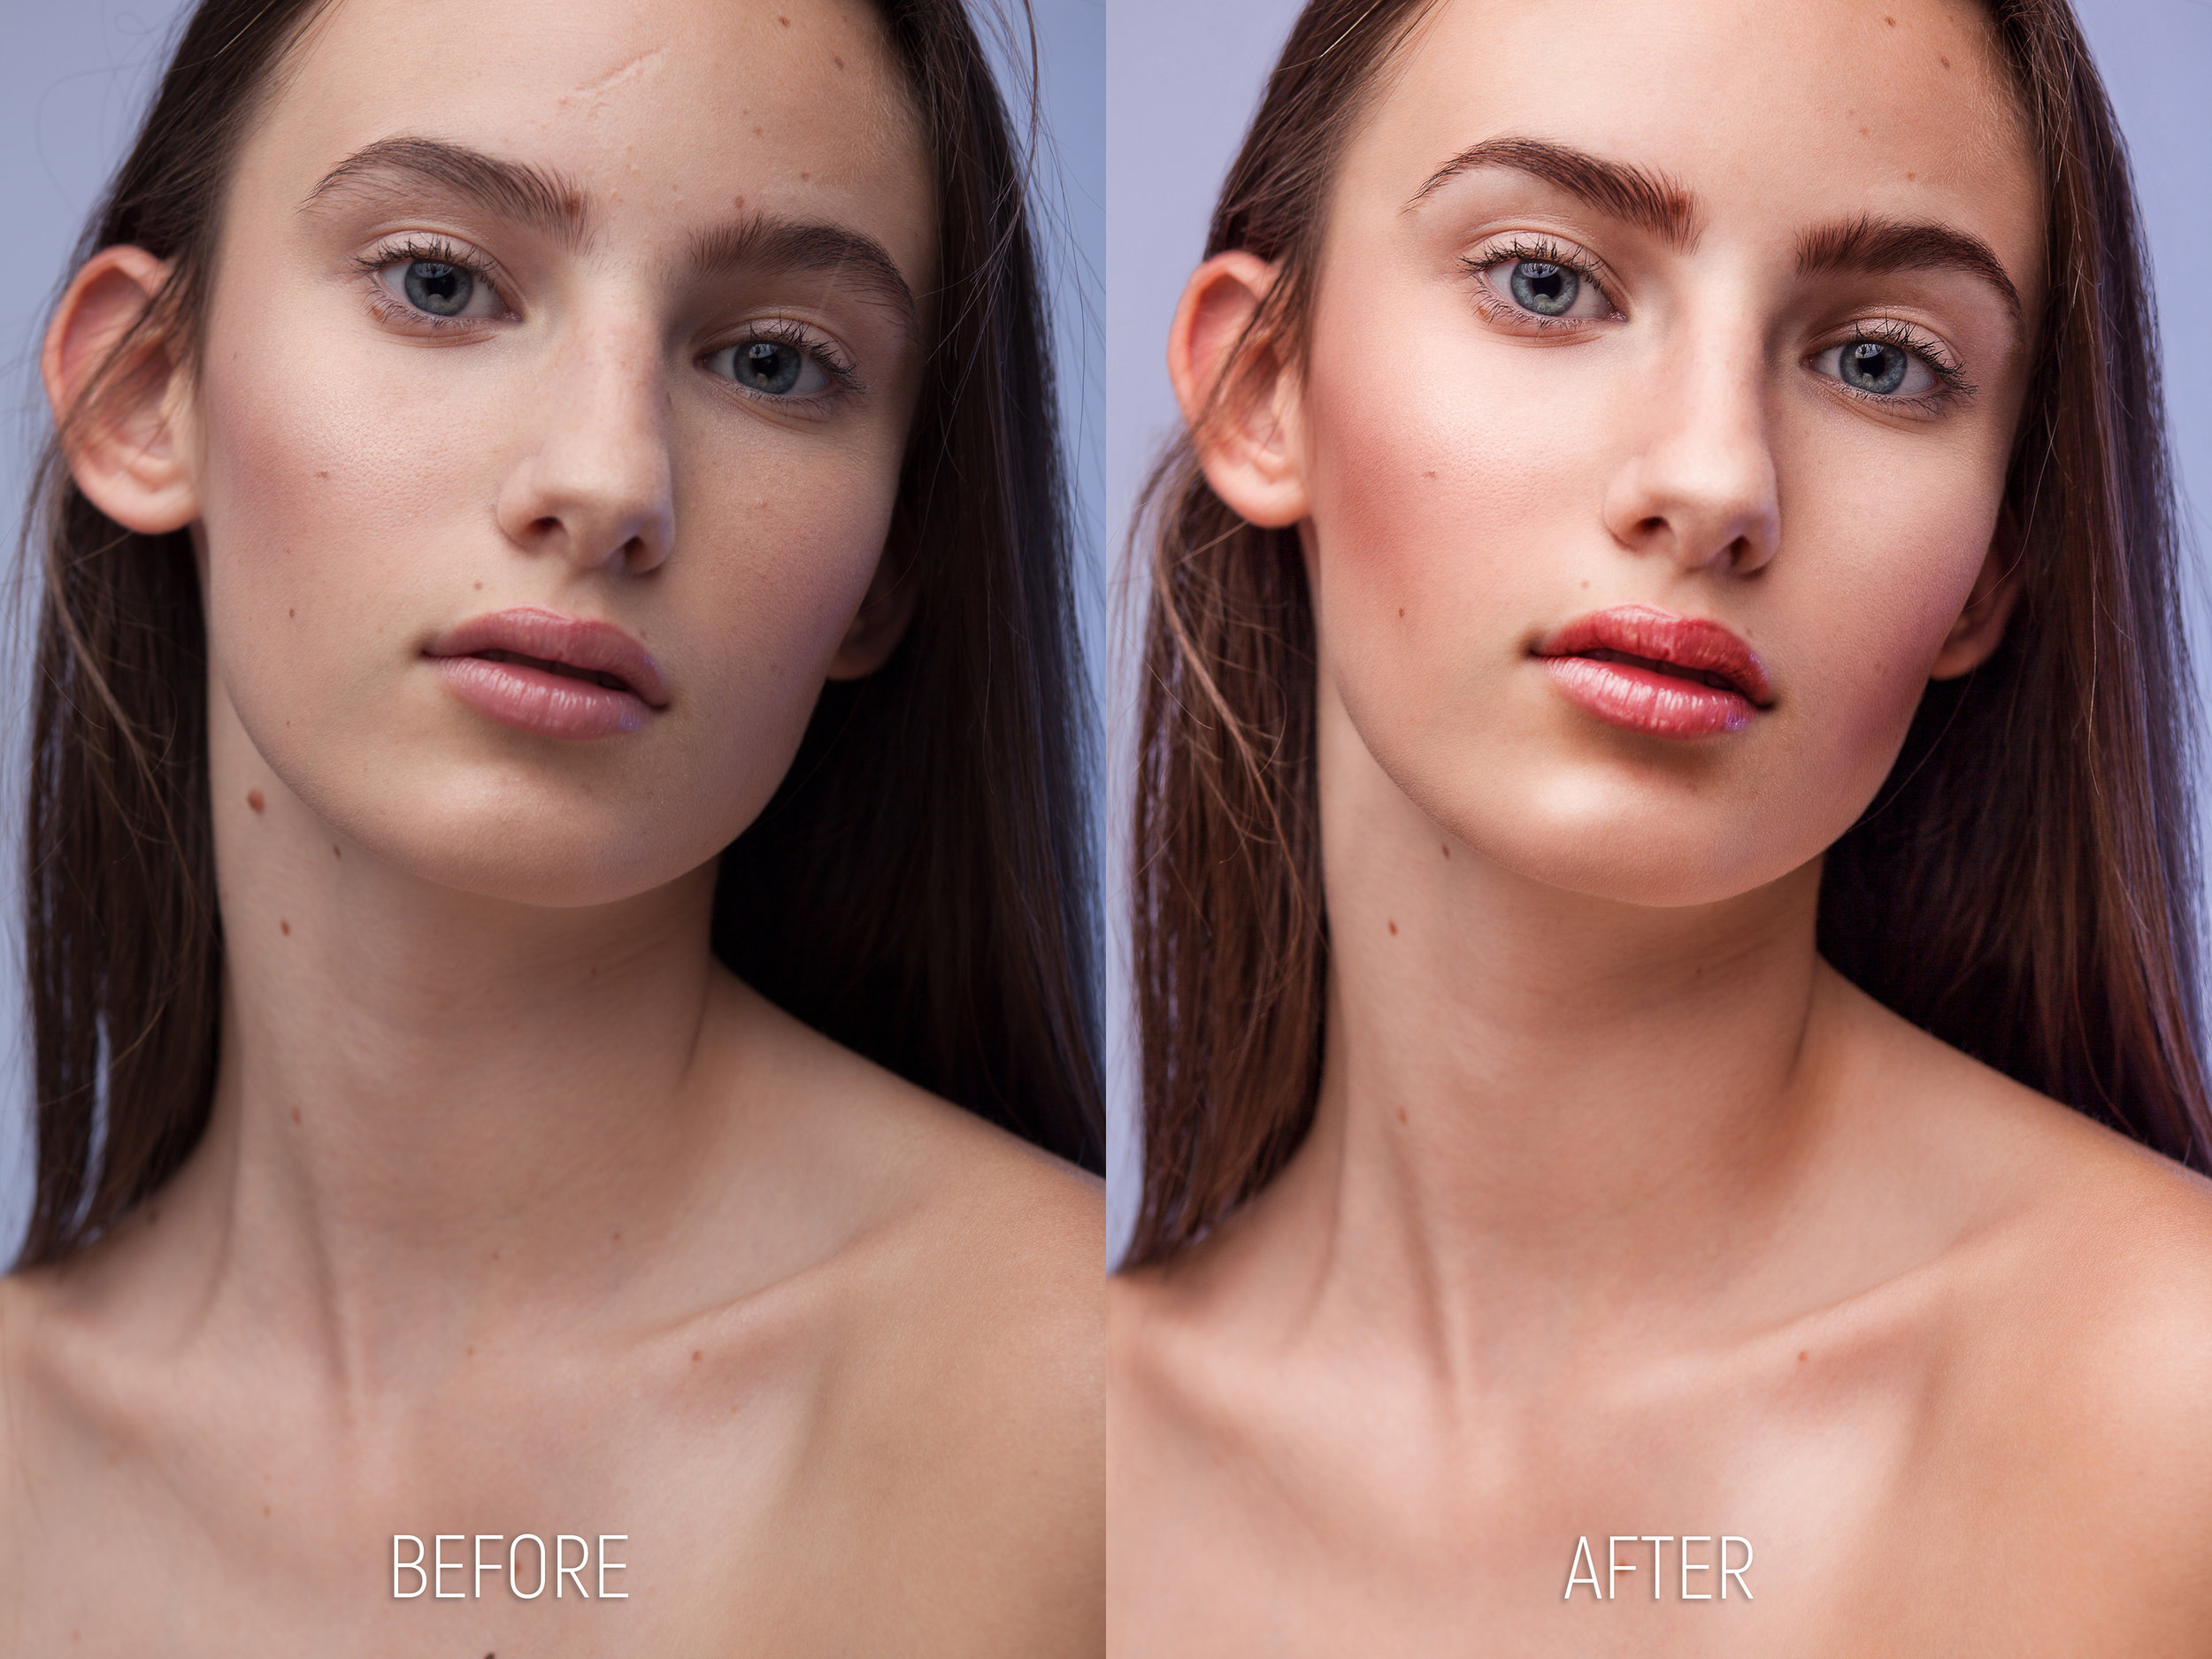 Brightness, contrast and color correction. Scar, hair patches and some birthmarks removed, eyebrows thinned. Used Liquify to make ears smaller, the nasal bone more narrow, fuller lips and narrow the jawline. Increase brightness of eyes, added blue and green to saturate and make the irides pop-up a bit more, made the eyelashes thicker and fuller by making them darker. Changed lip color and saturation to give the lips more of a glossy look. Matched overall skin color (frequency separation), used dodge and burn to give the portrait more volume and contrast, patched other imperfections and added sharpness on a few facial features using High Pass filter and masks.